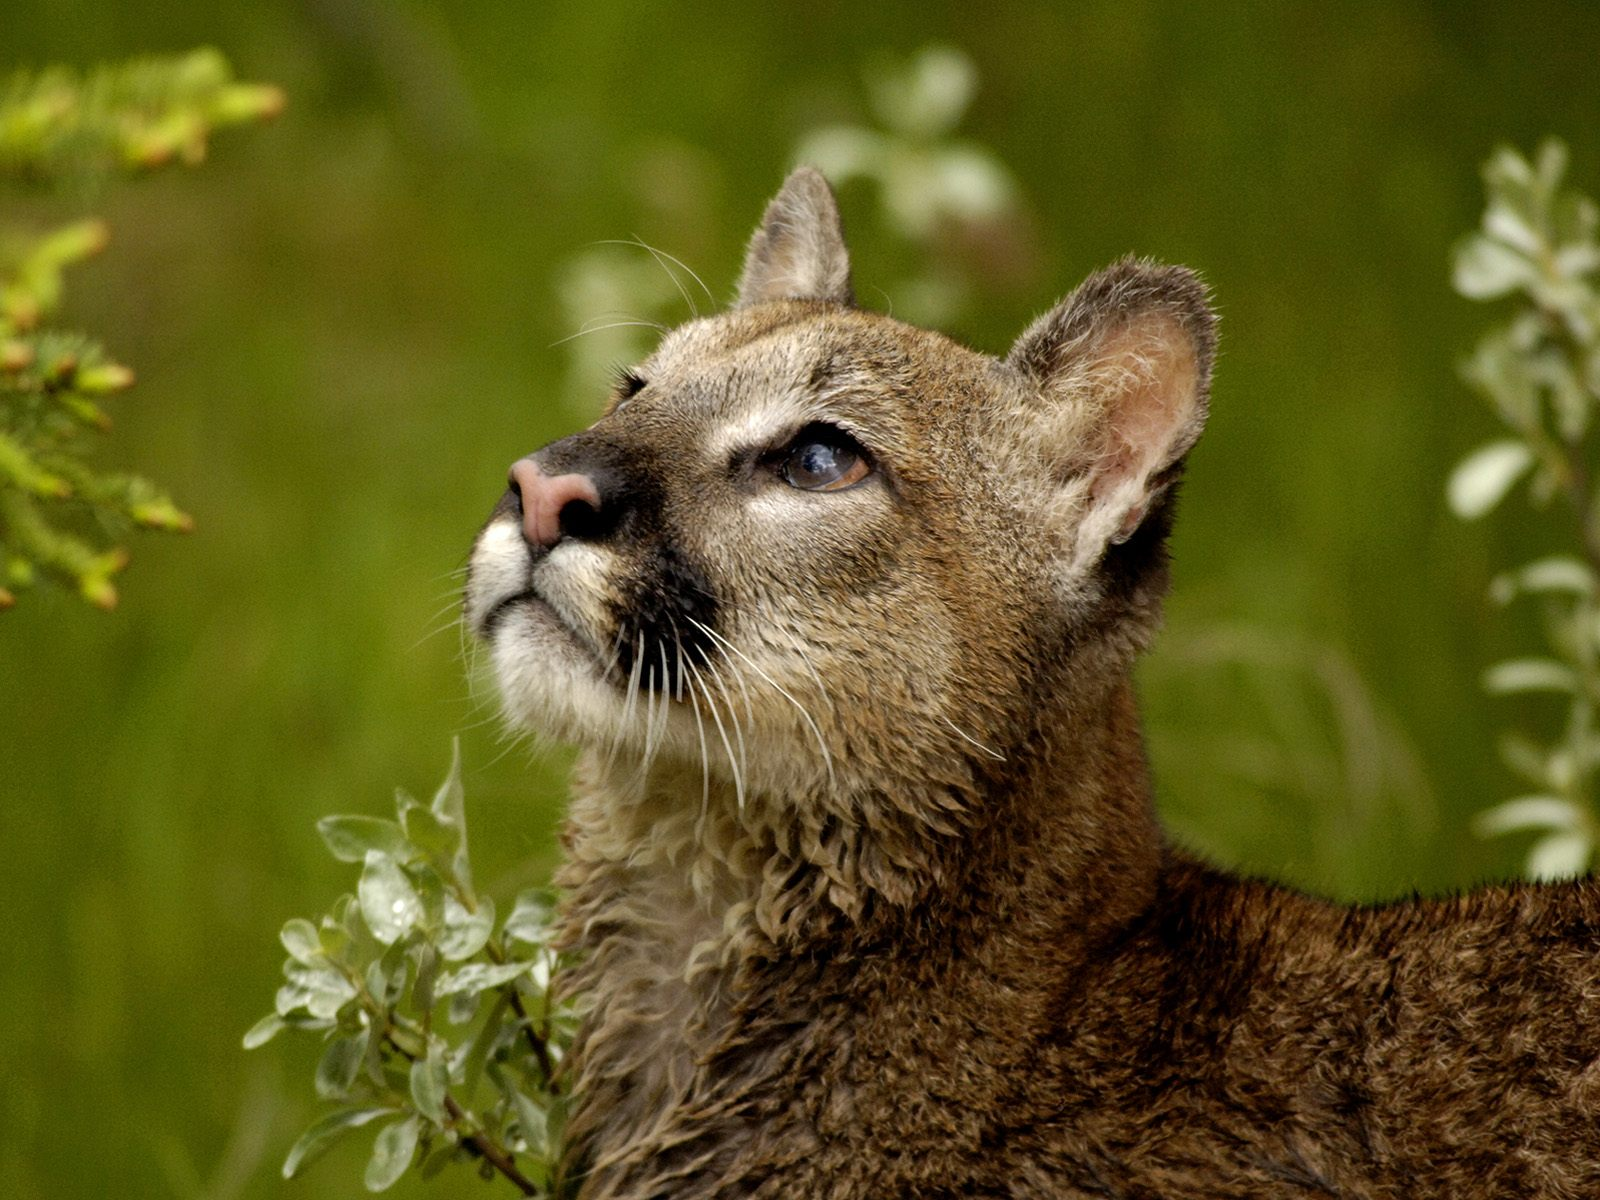 hd cougar wallpaper 24721